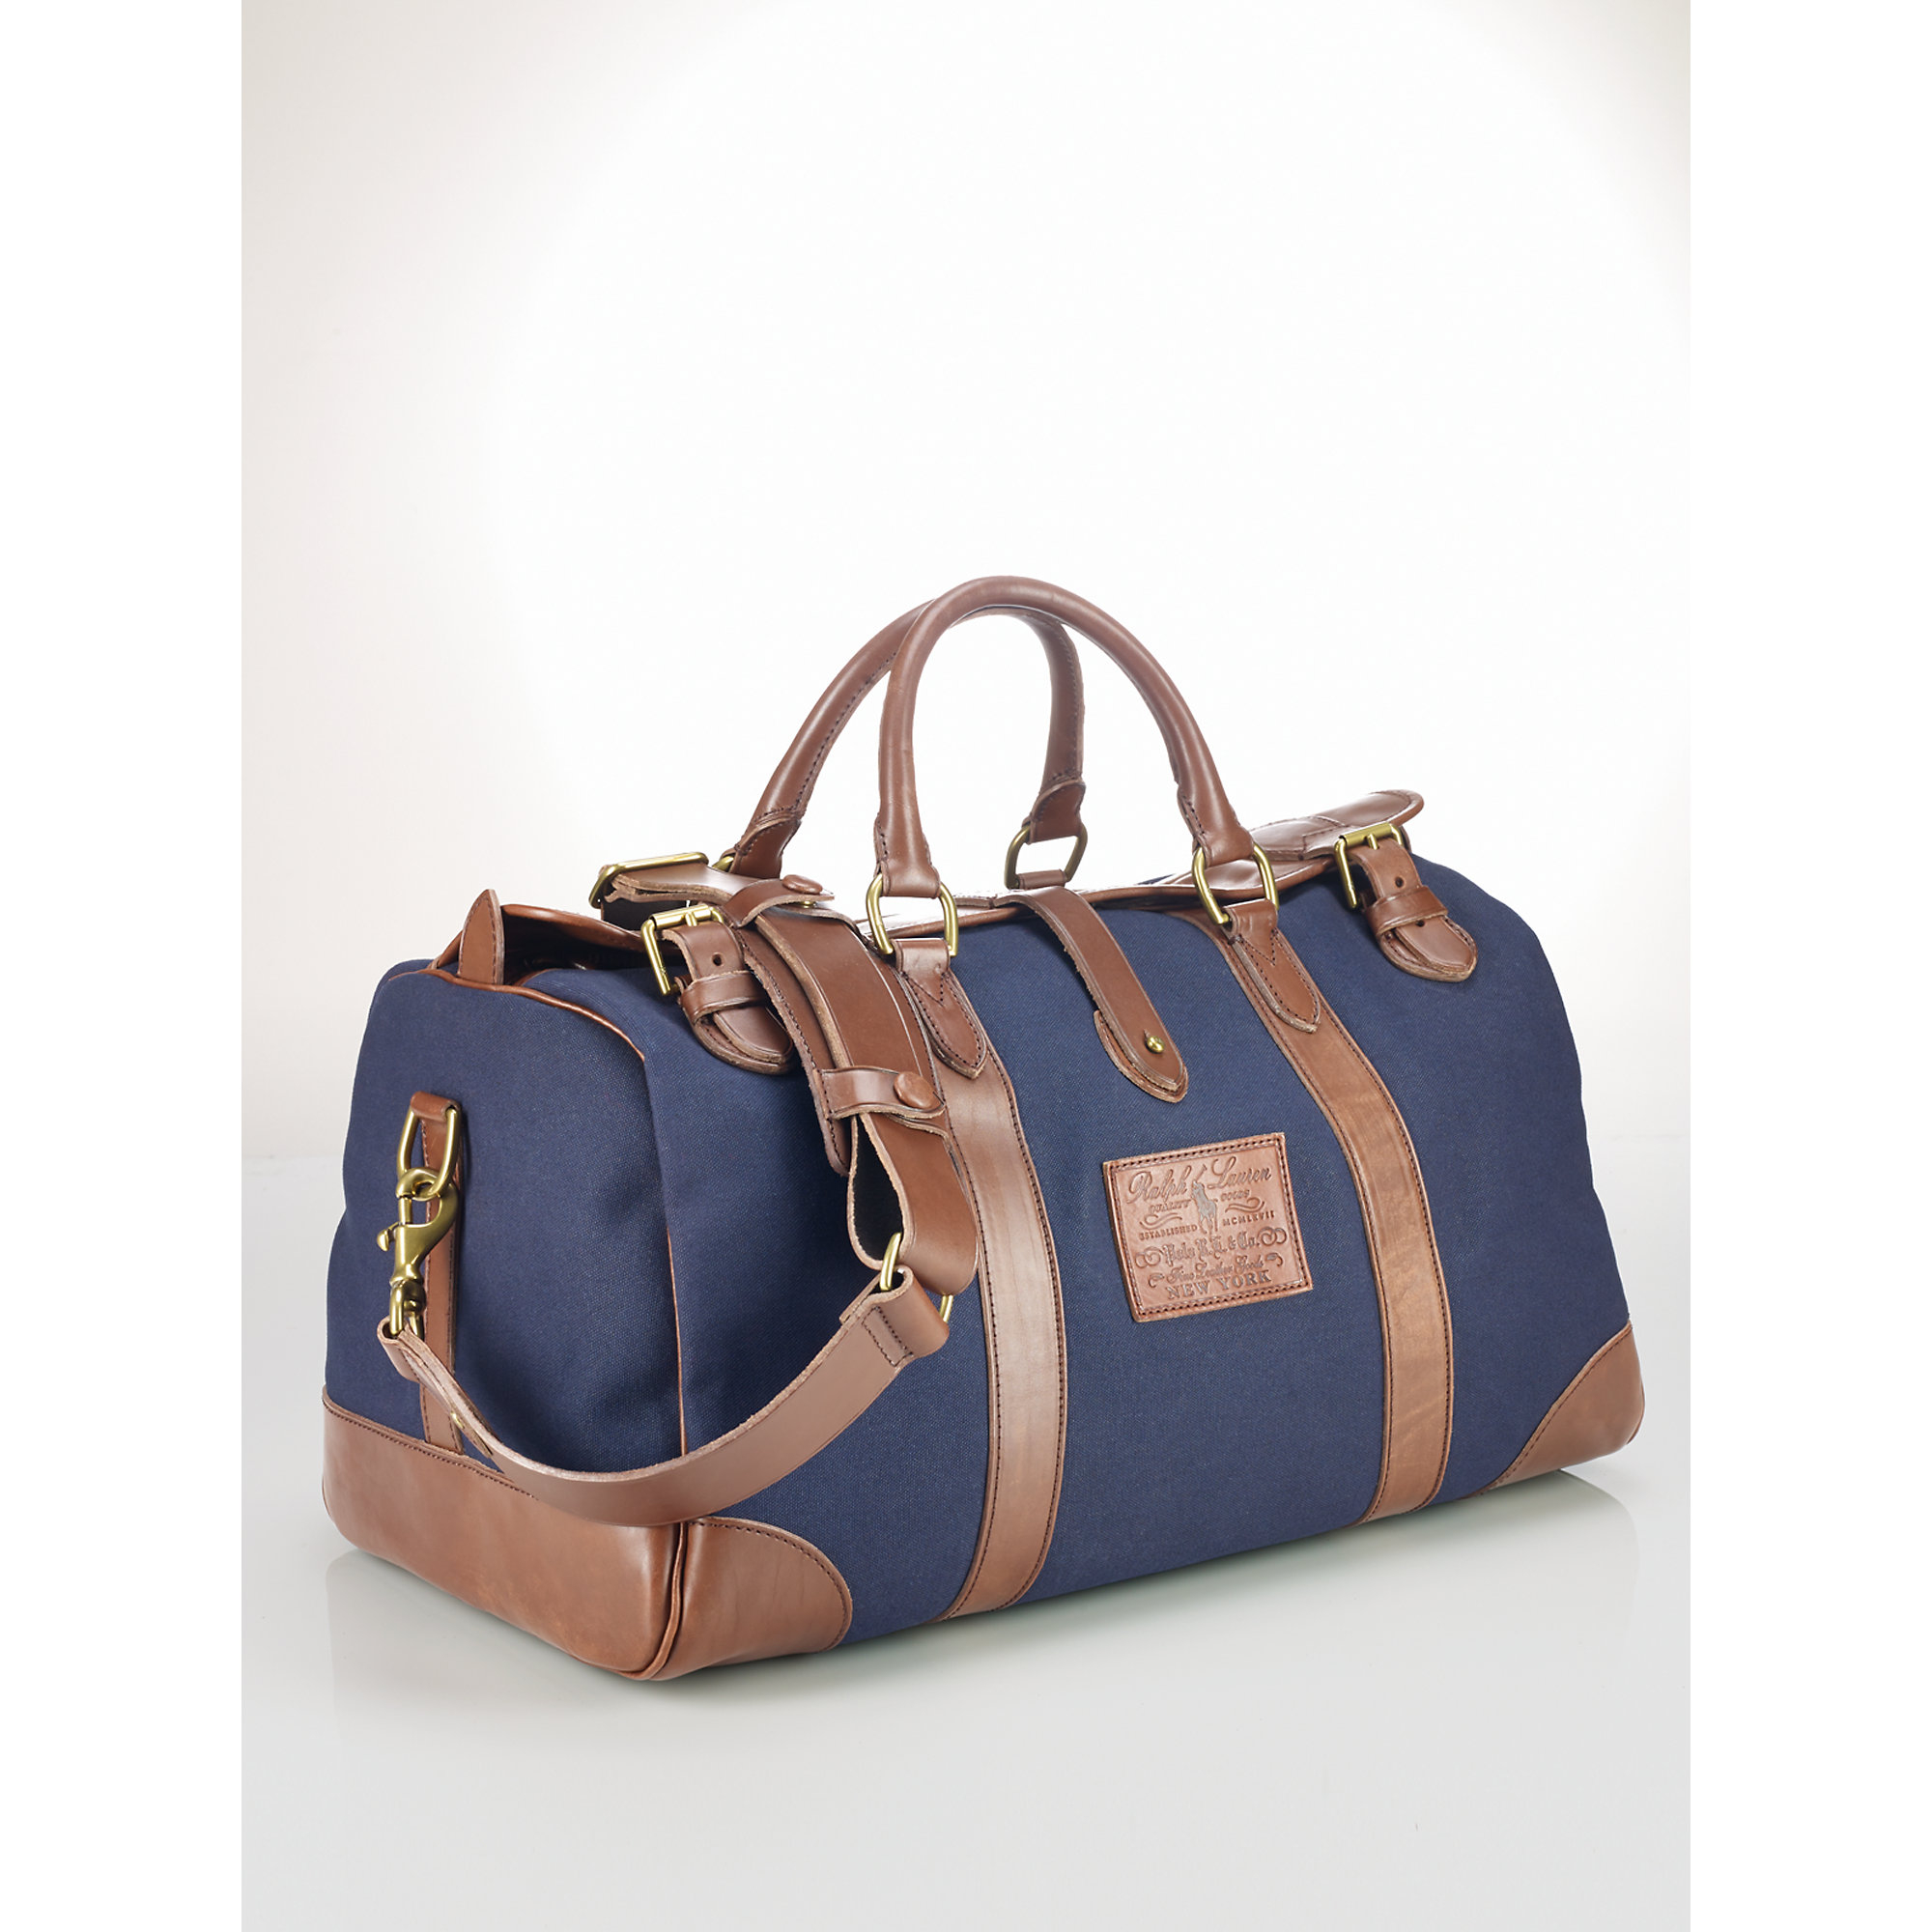 336f970d34c4 Lyst - Polo Ralph Lauren Leather-trim Canvas Gym Bag in Blue for Men